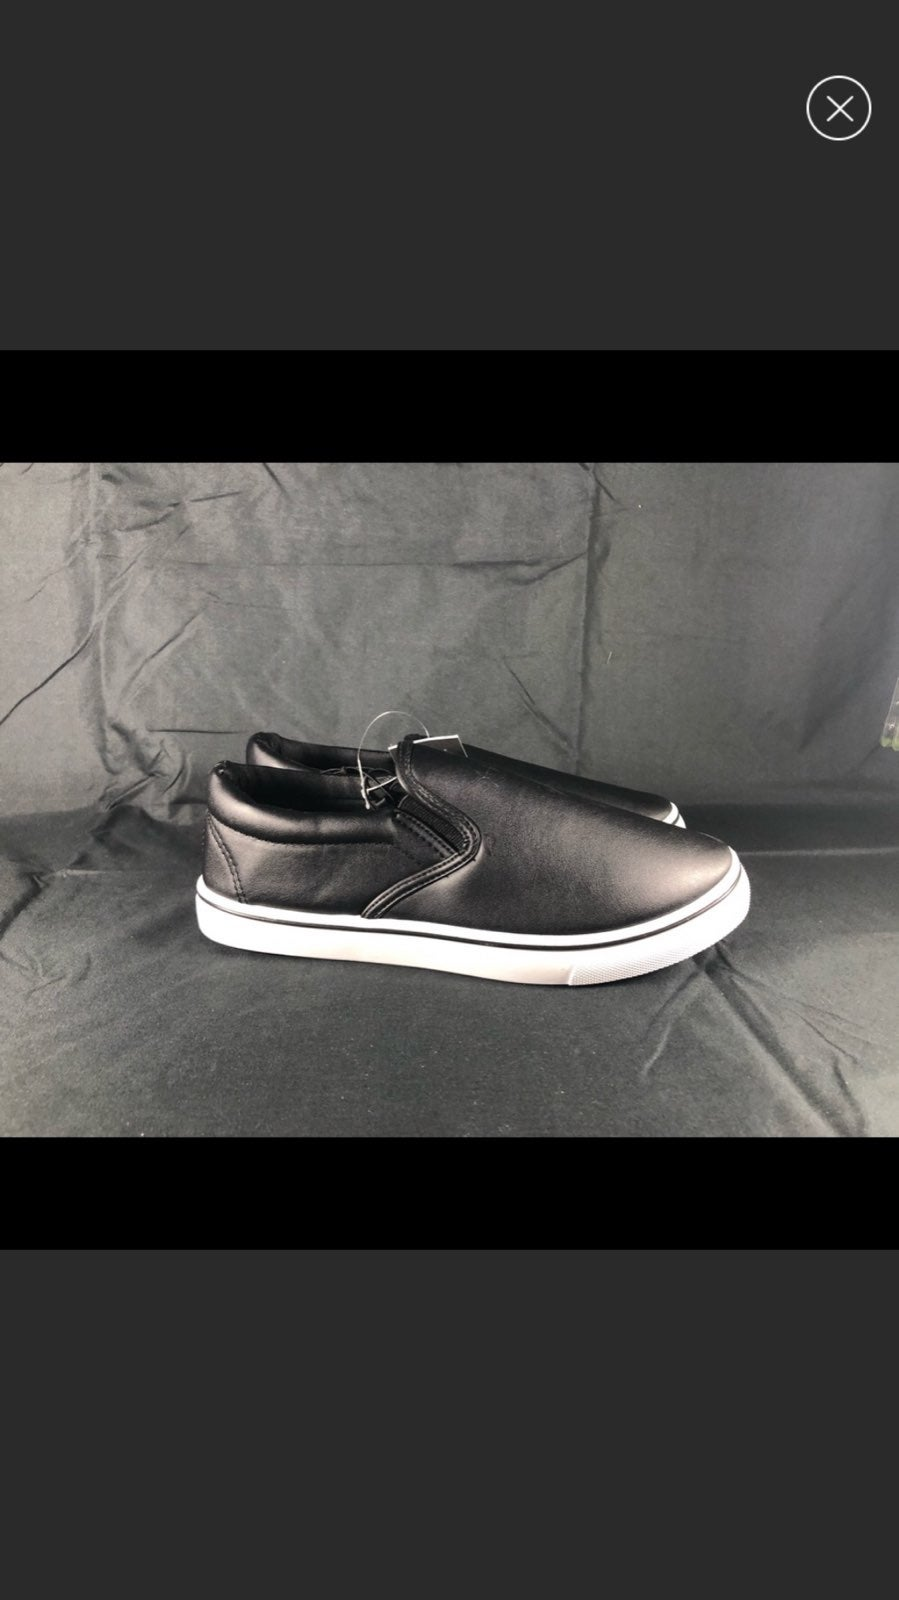 Rue21 Faux Leather Slip Ons